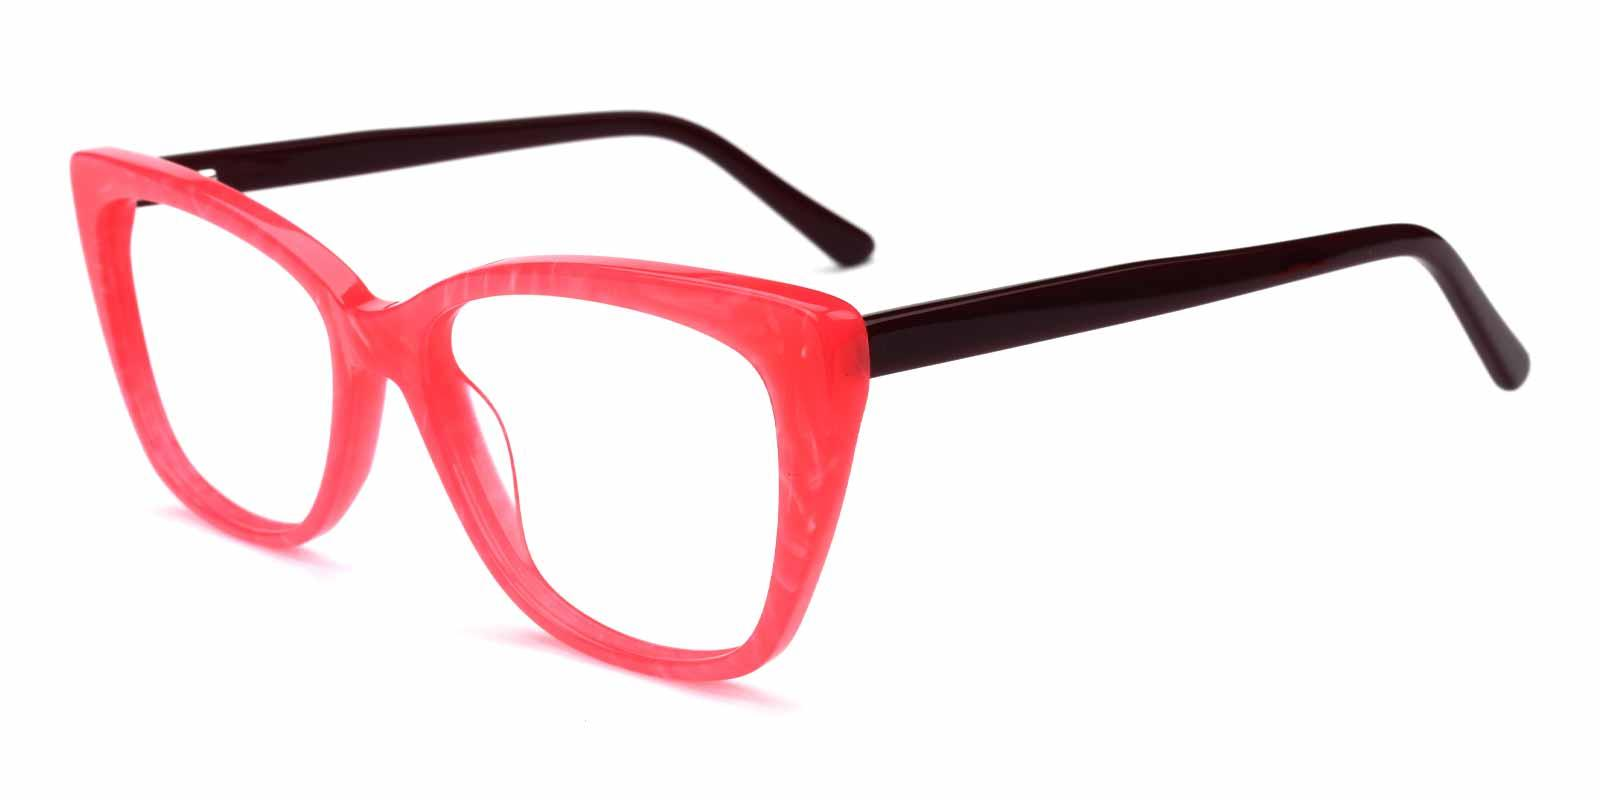 Kiko-Purple-Cat-Acetate-Eyeglasses-additional1